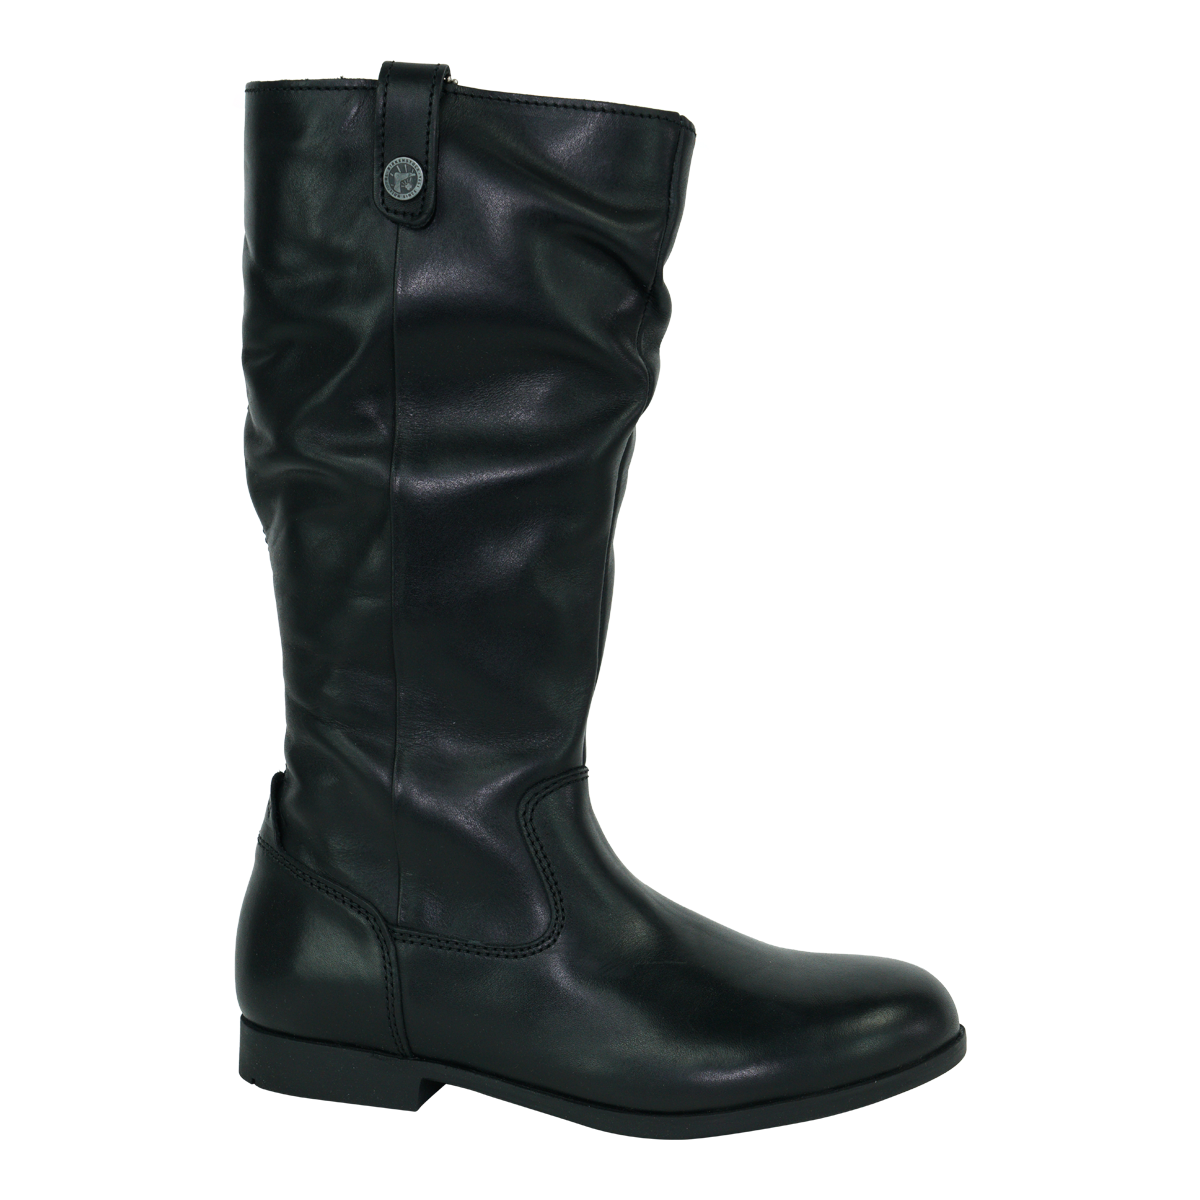 39e919f05a867 Details about Birkenstock Women's Sarnia High Leather Boots Black 36